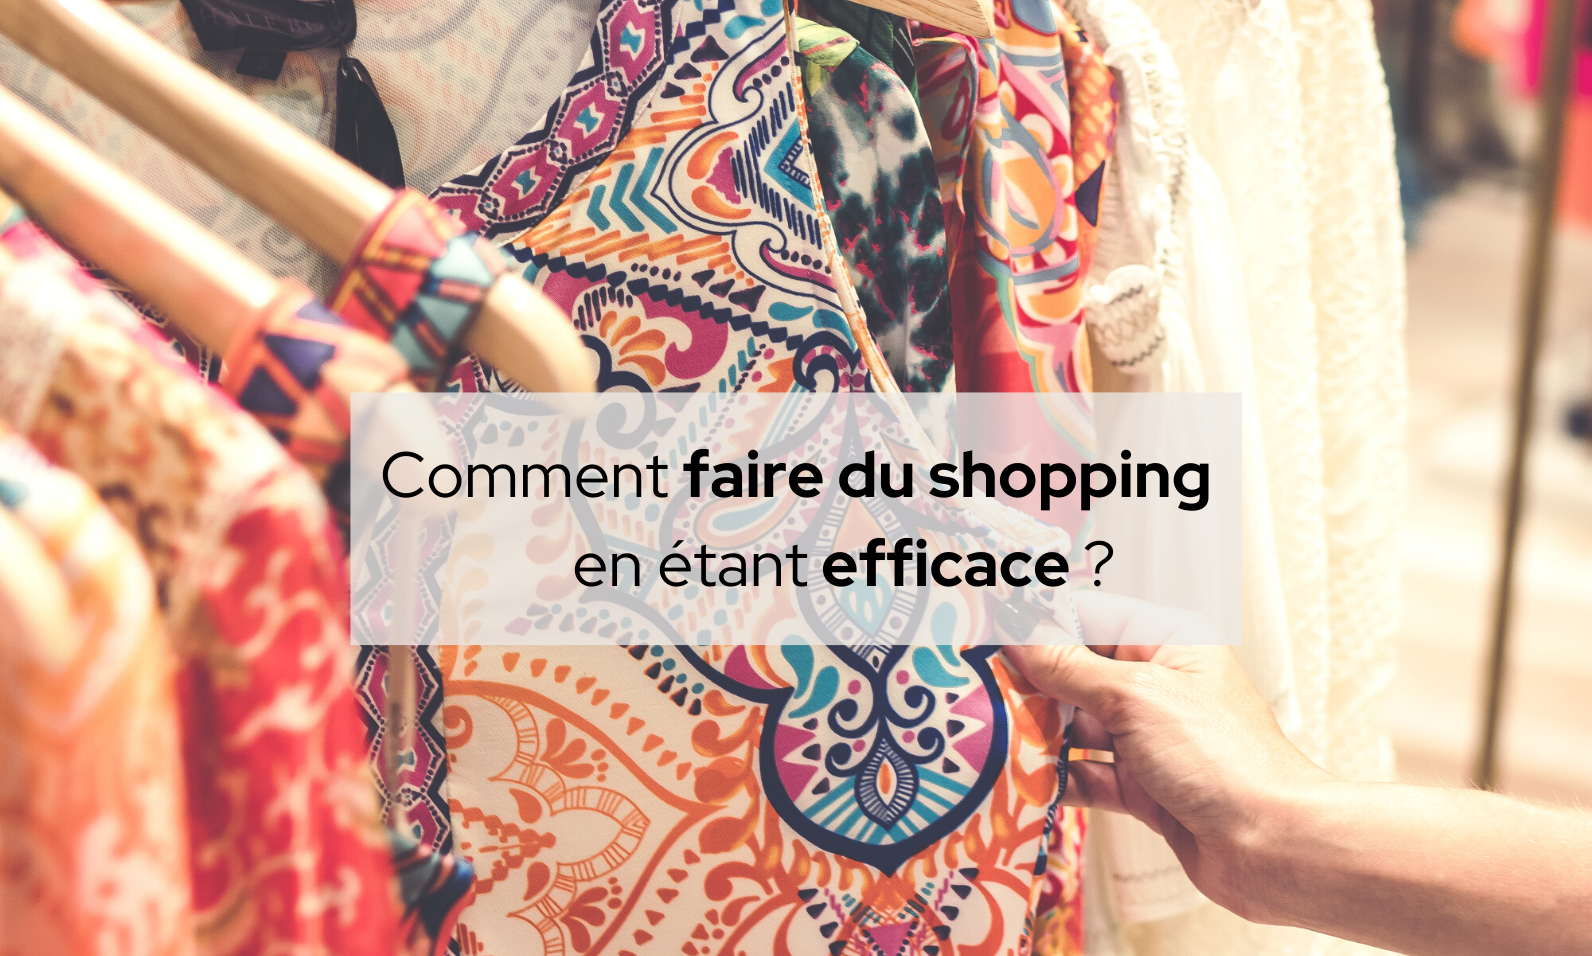 Comment faire du shopping en étant efficace ?